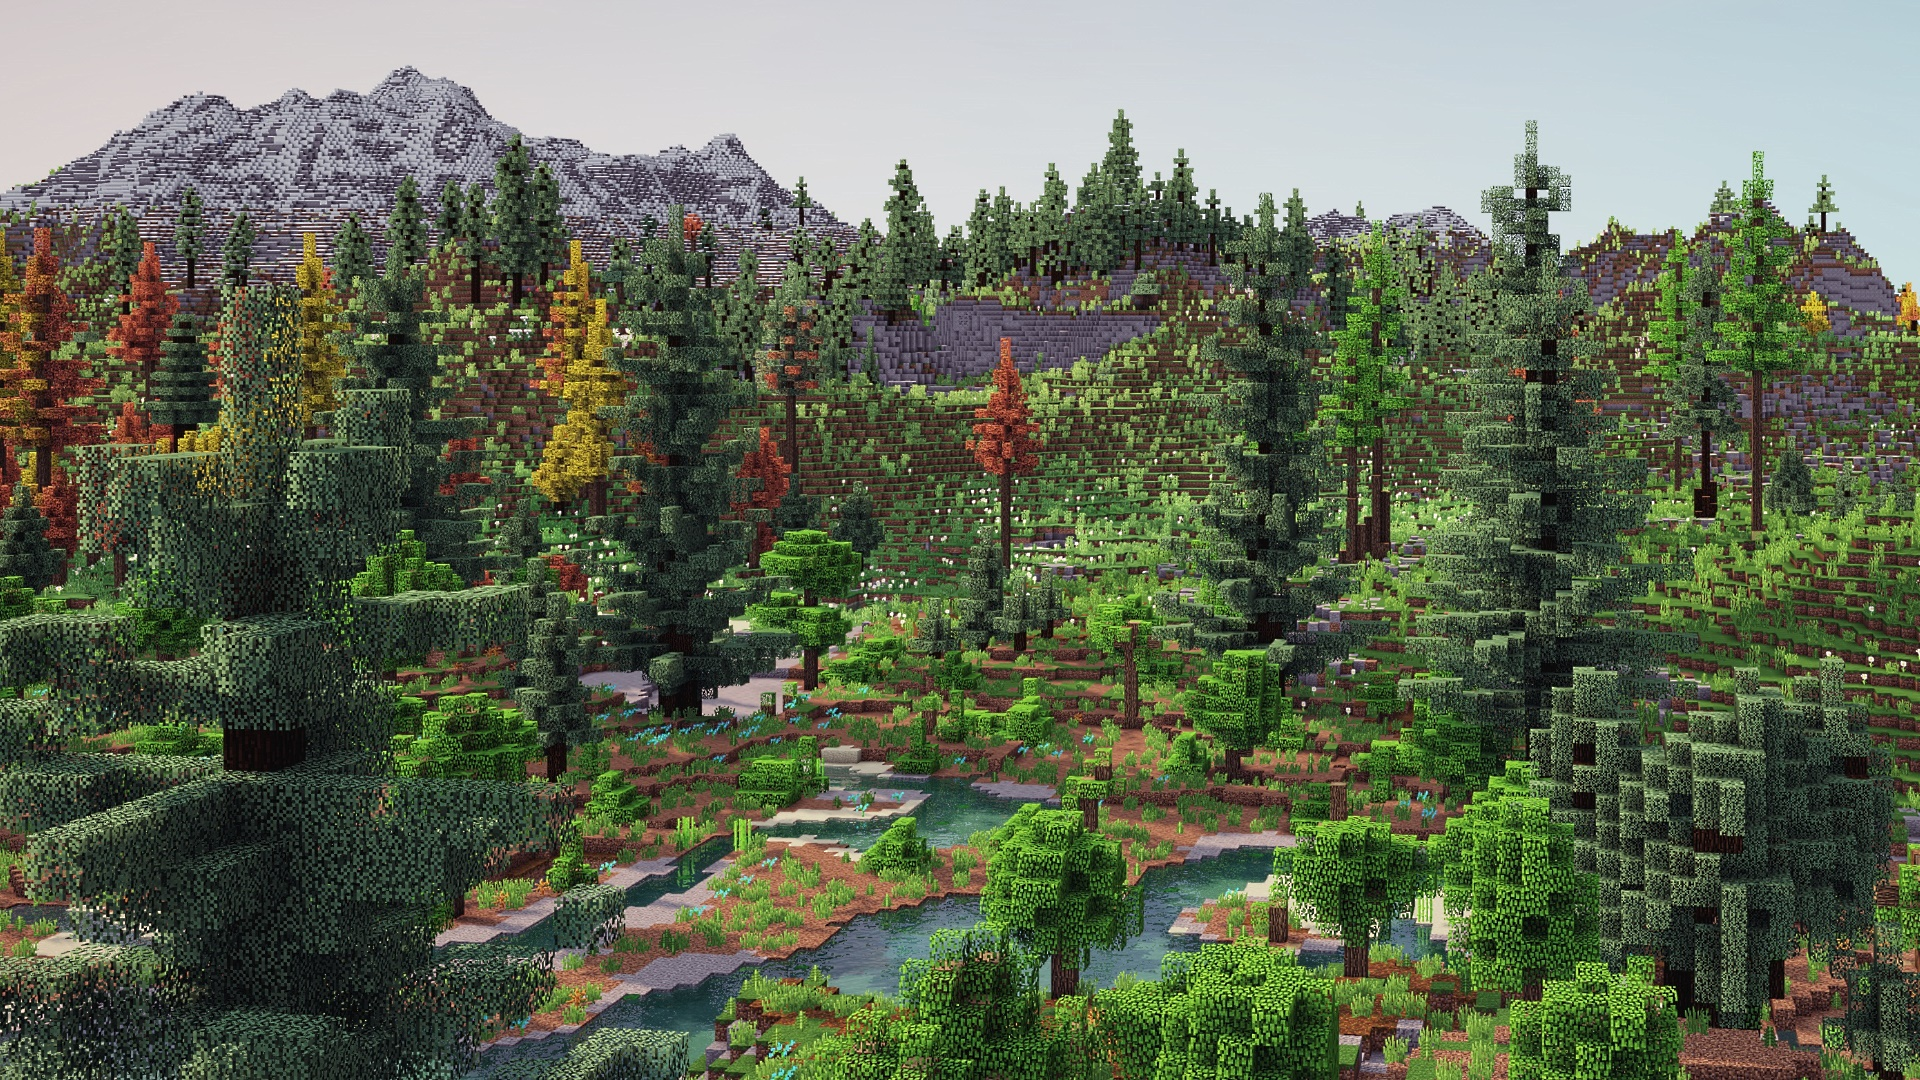 Minecraft player spends a year revamping terrain generation